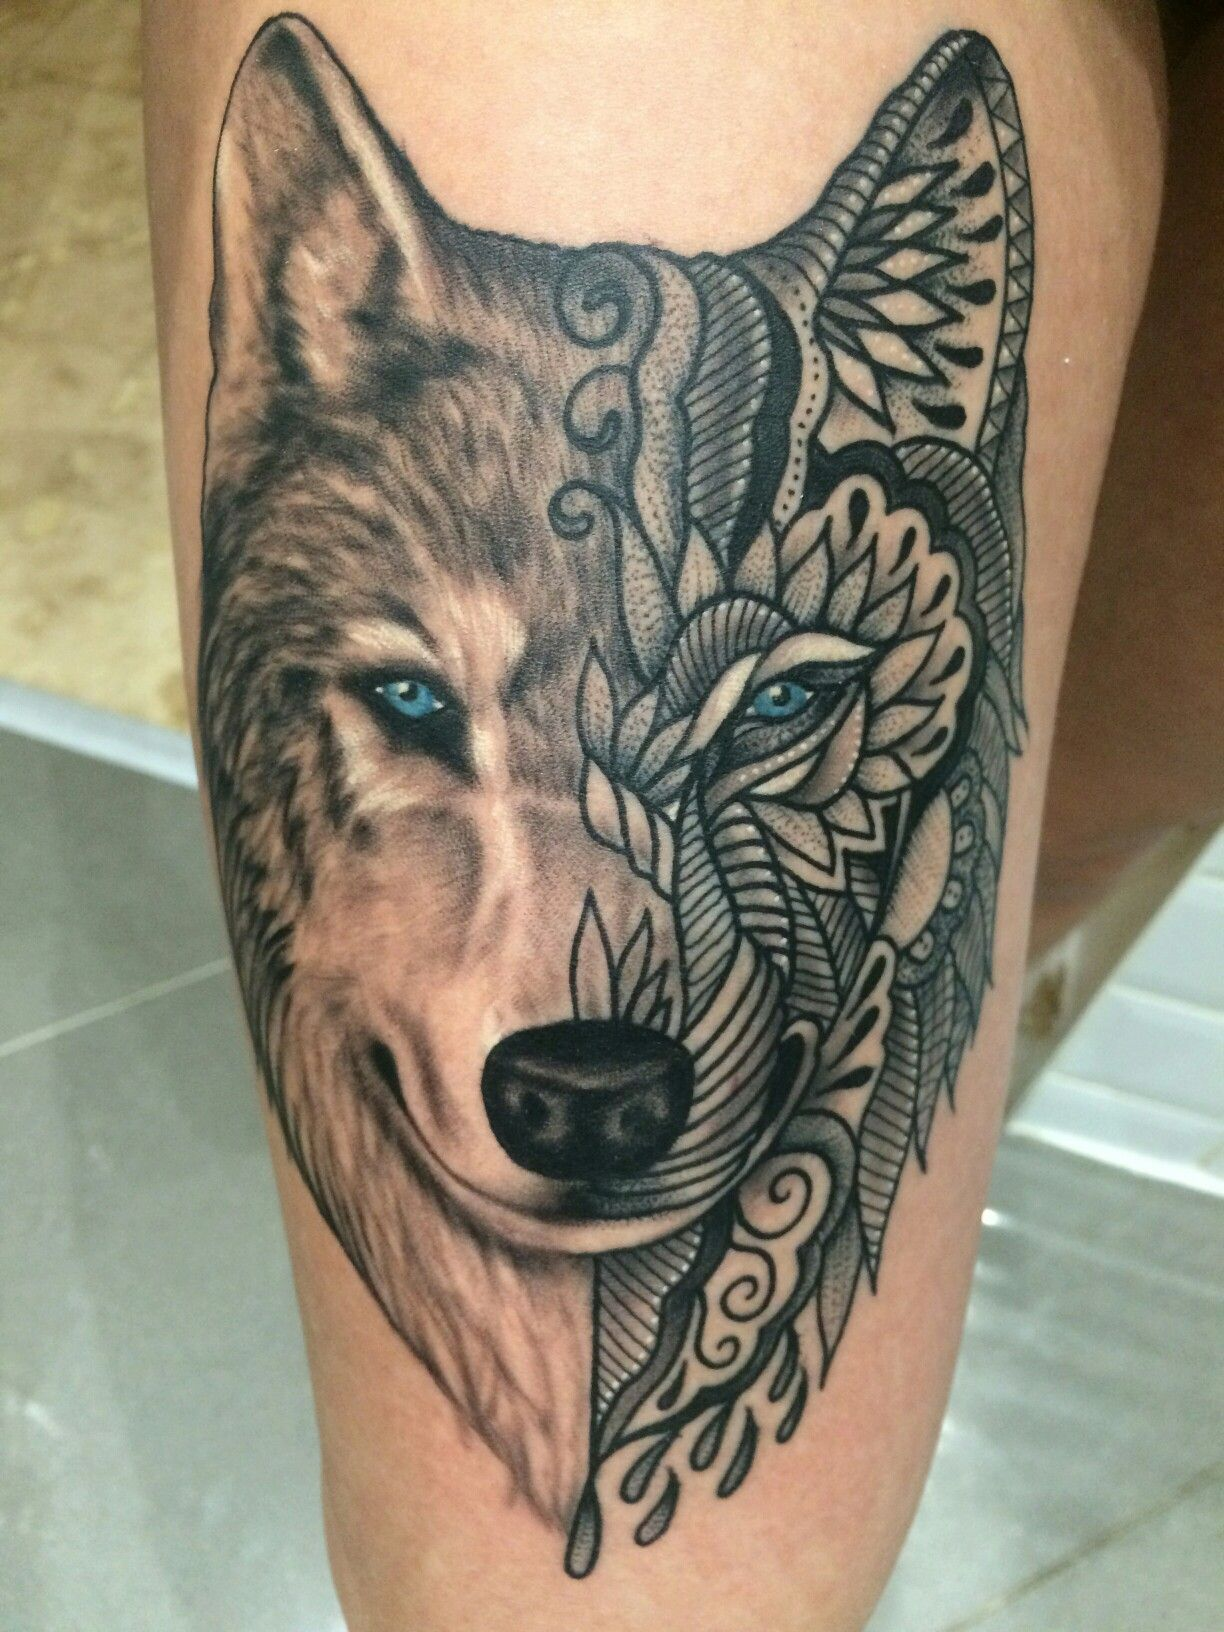 Mandala Wolf Half Realistic Looking Wolf Thigh Tattoo Wolf With Blue Eyes Shoulder Tattoos For Females Small Chest Tattoos Mandala Wolf